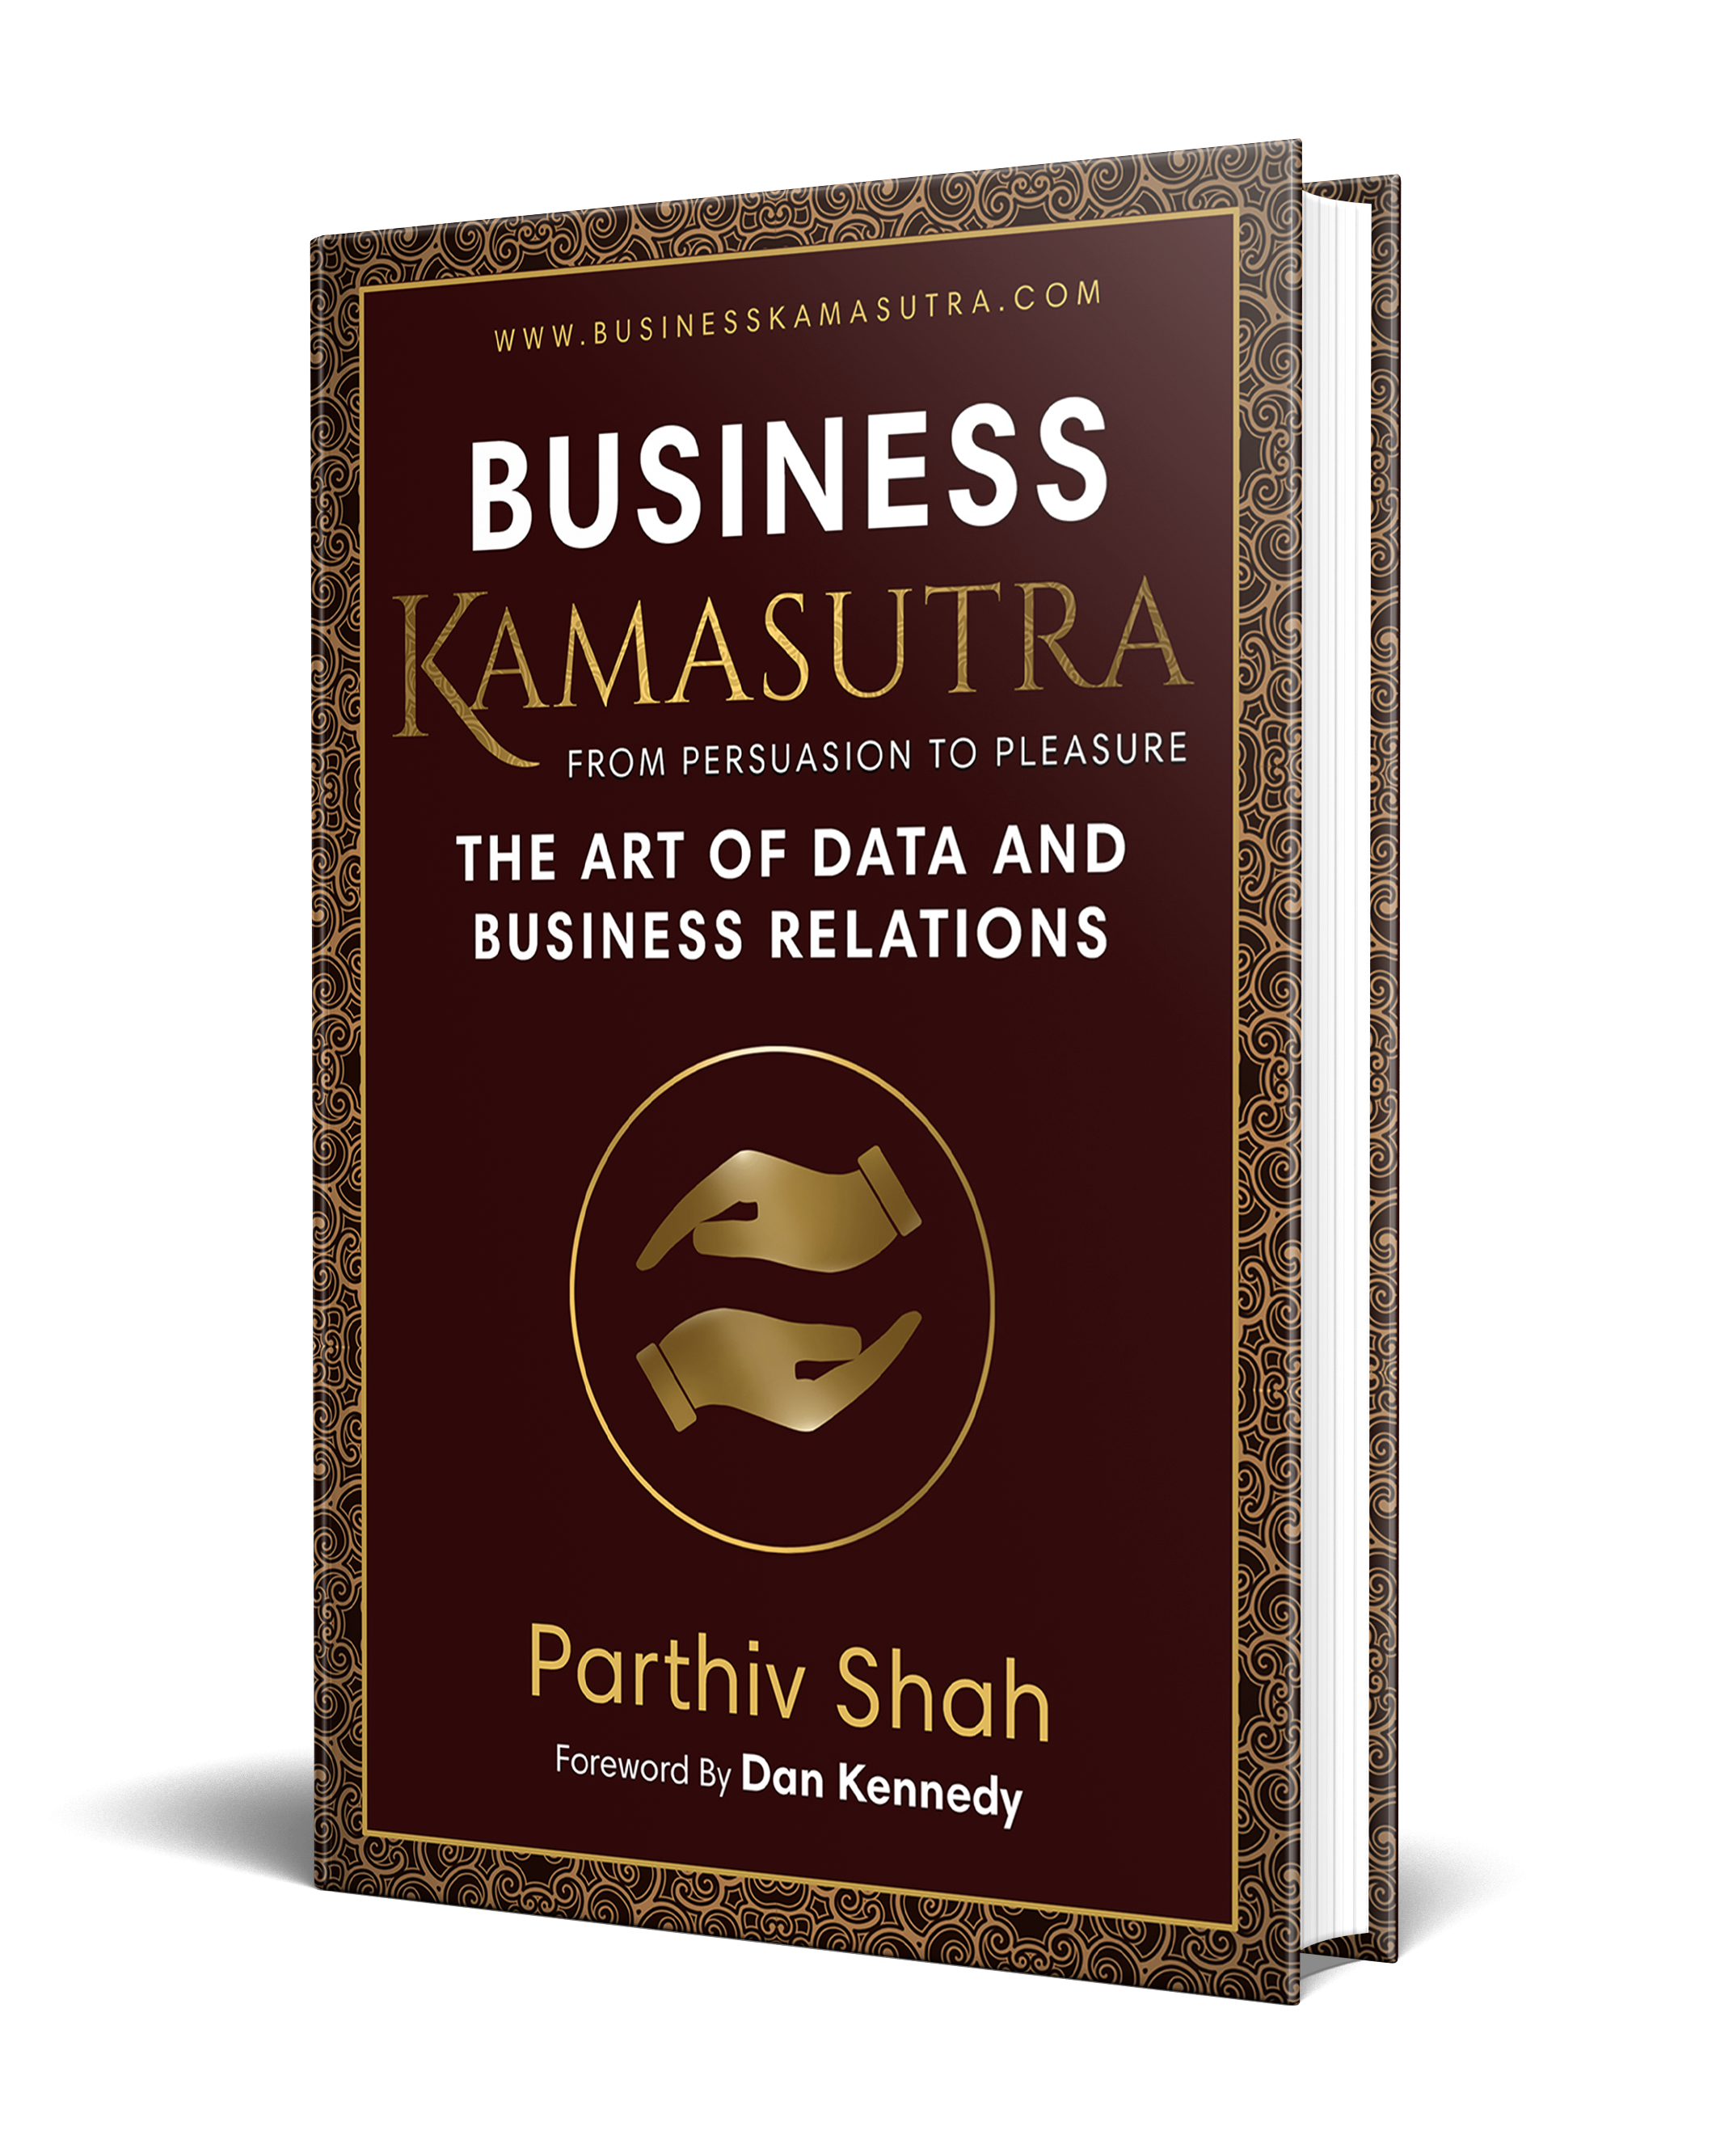 Business_Kamasutra_left_facing_